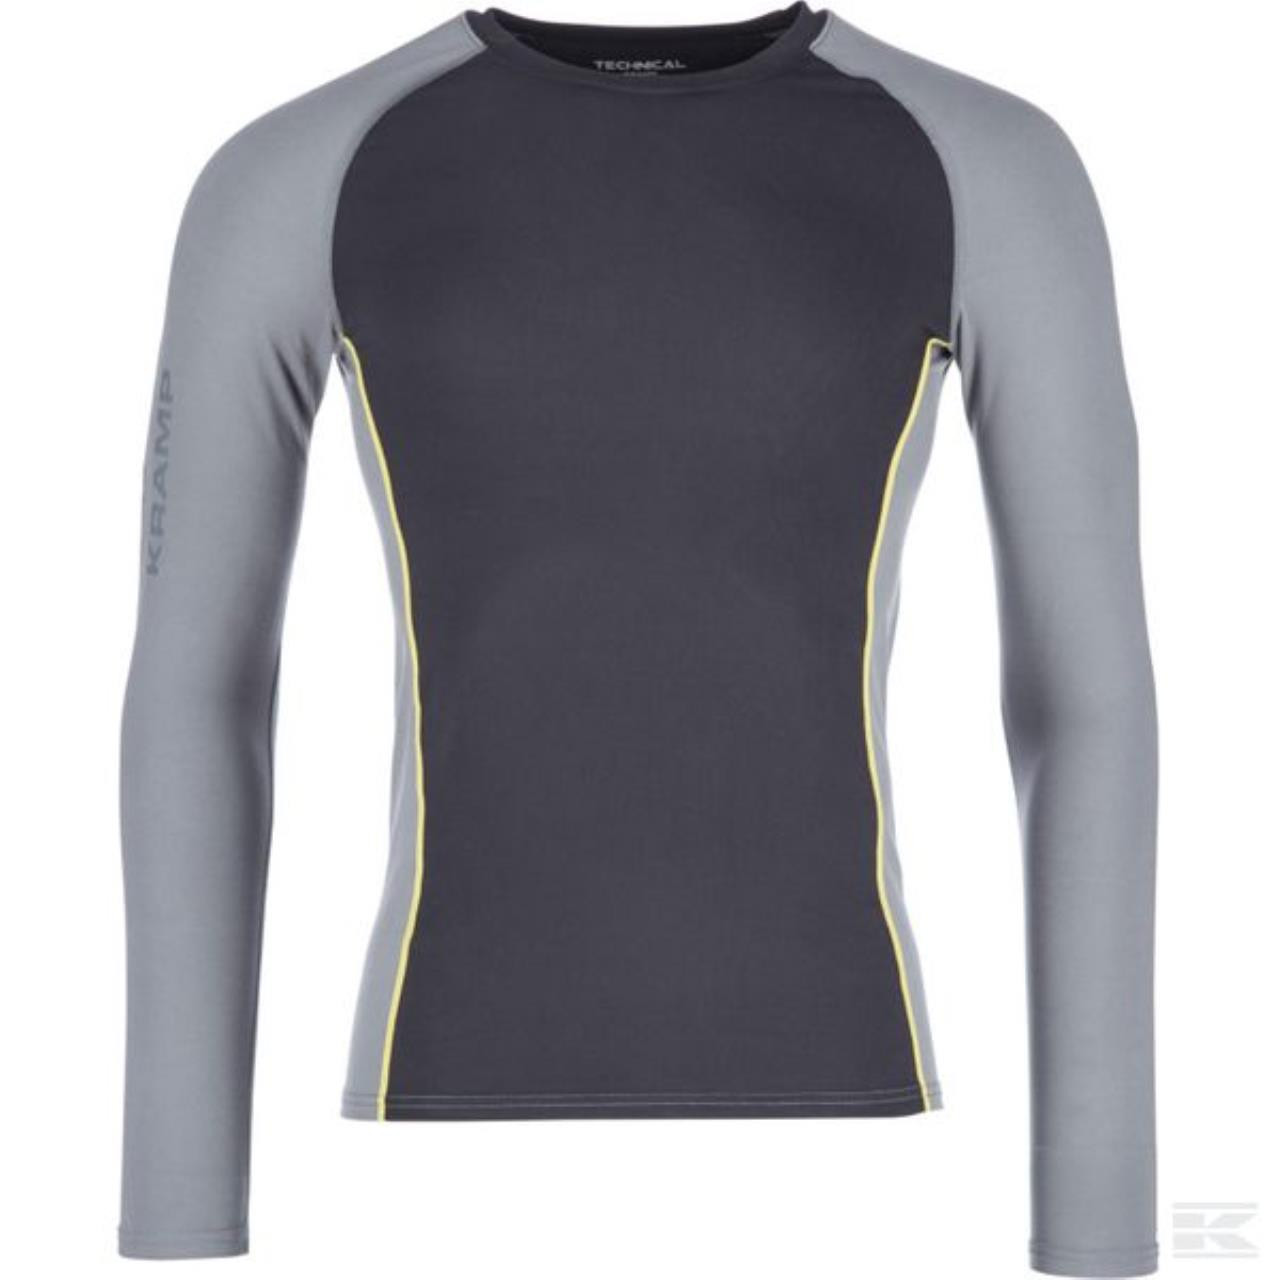 Termoundertrøje Technical Carbon, str. S til 3XL